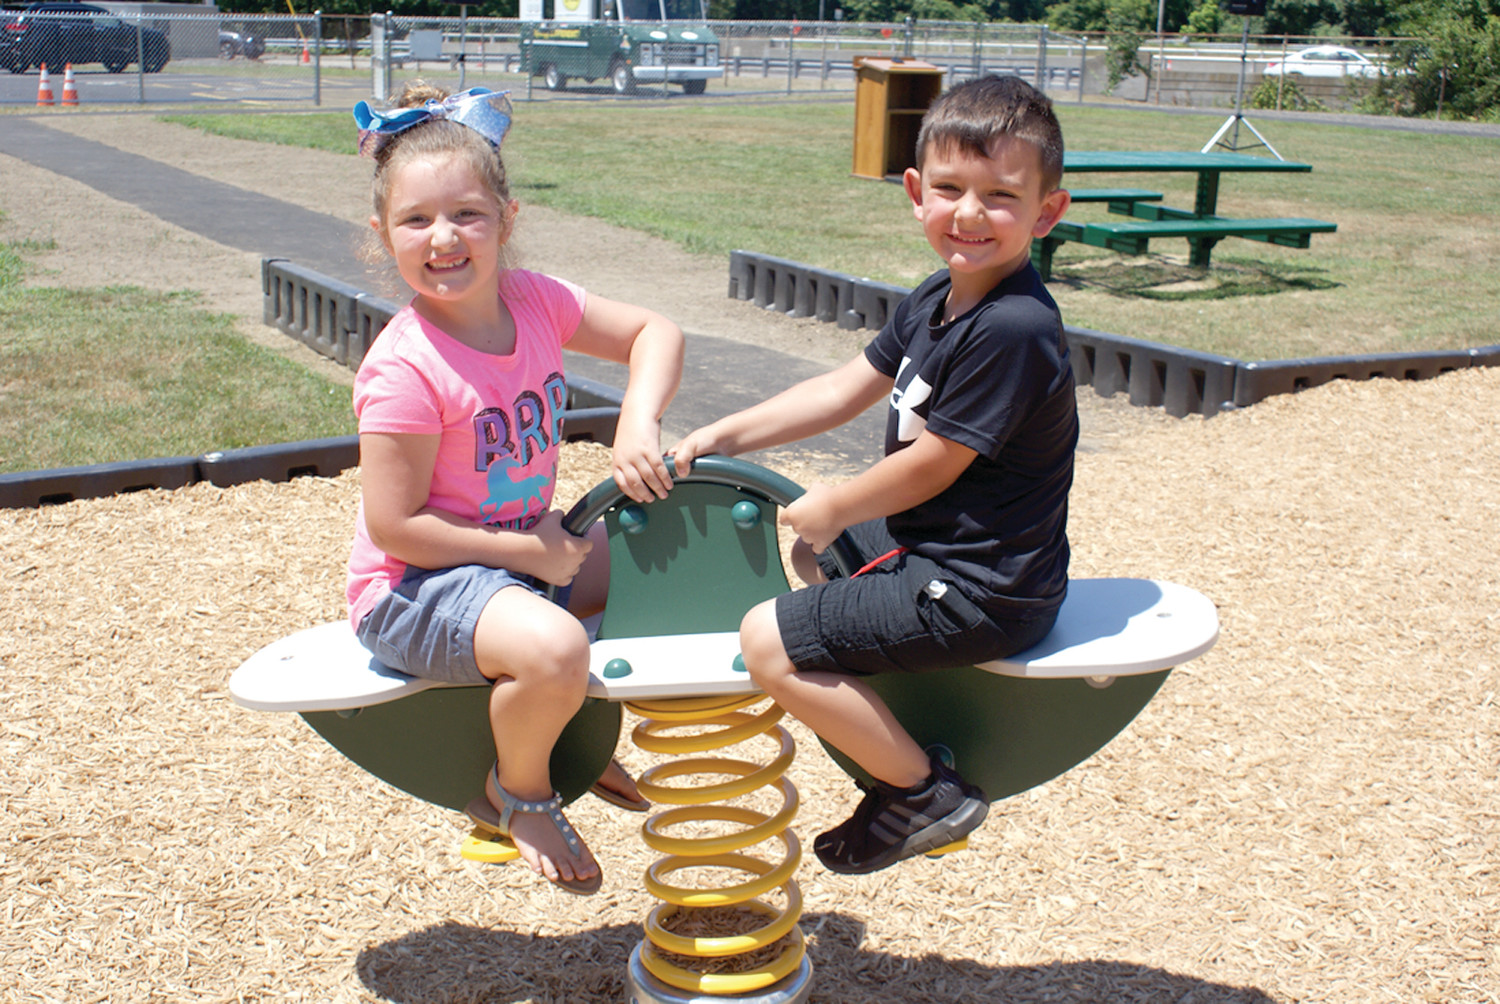 Six year-old Sophia Manna and her four year-old brother Luca play on the see-saw.